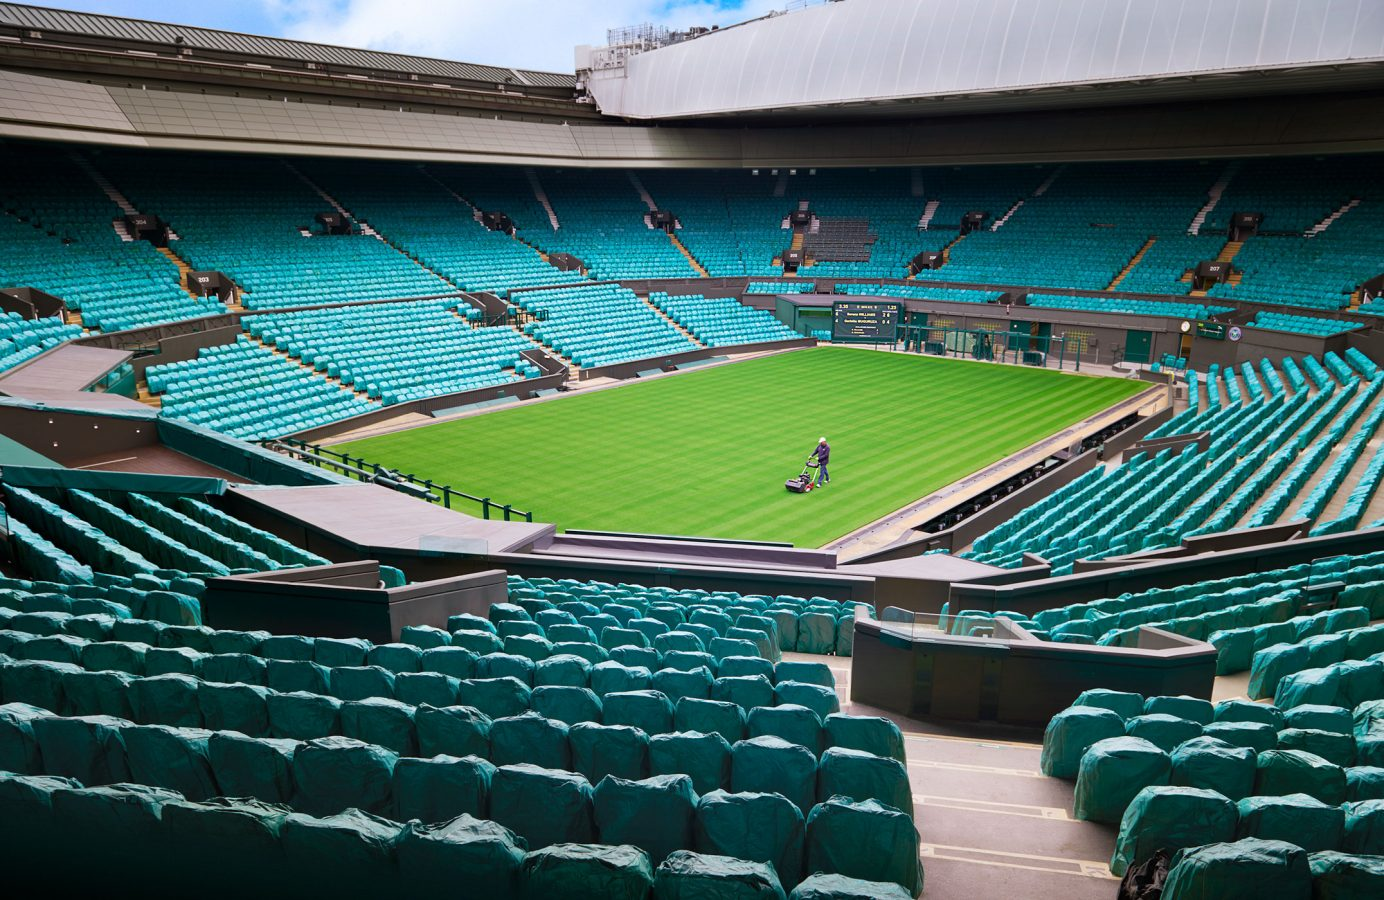 Centre Court All England Lawn Tennis and Croquet Club